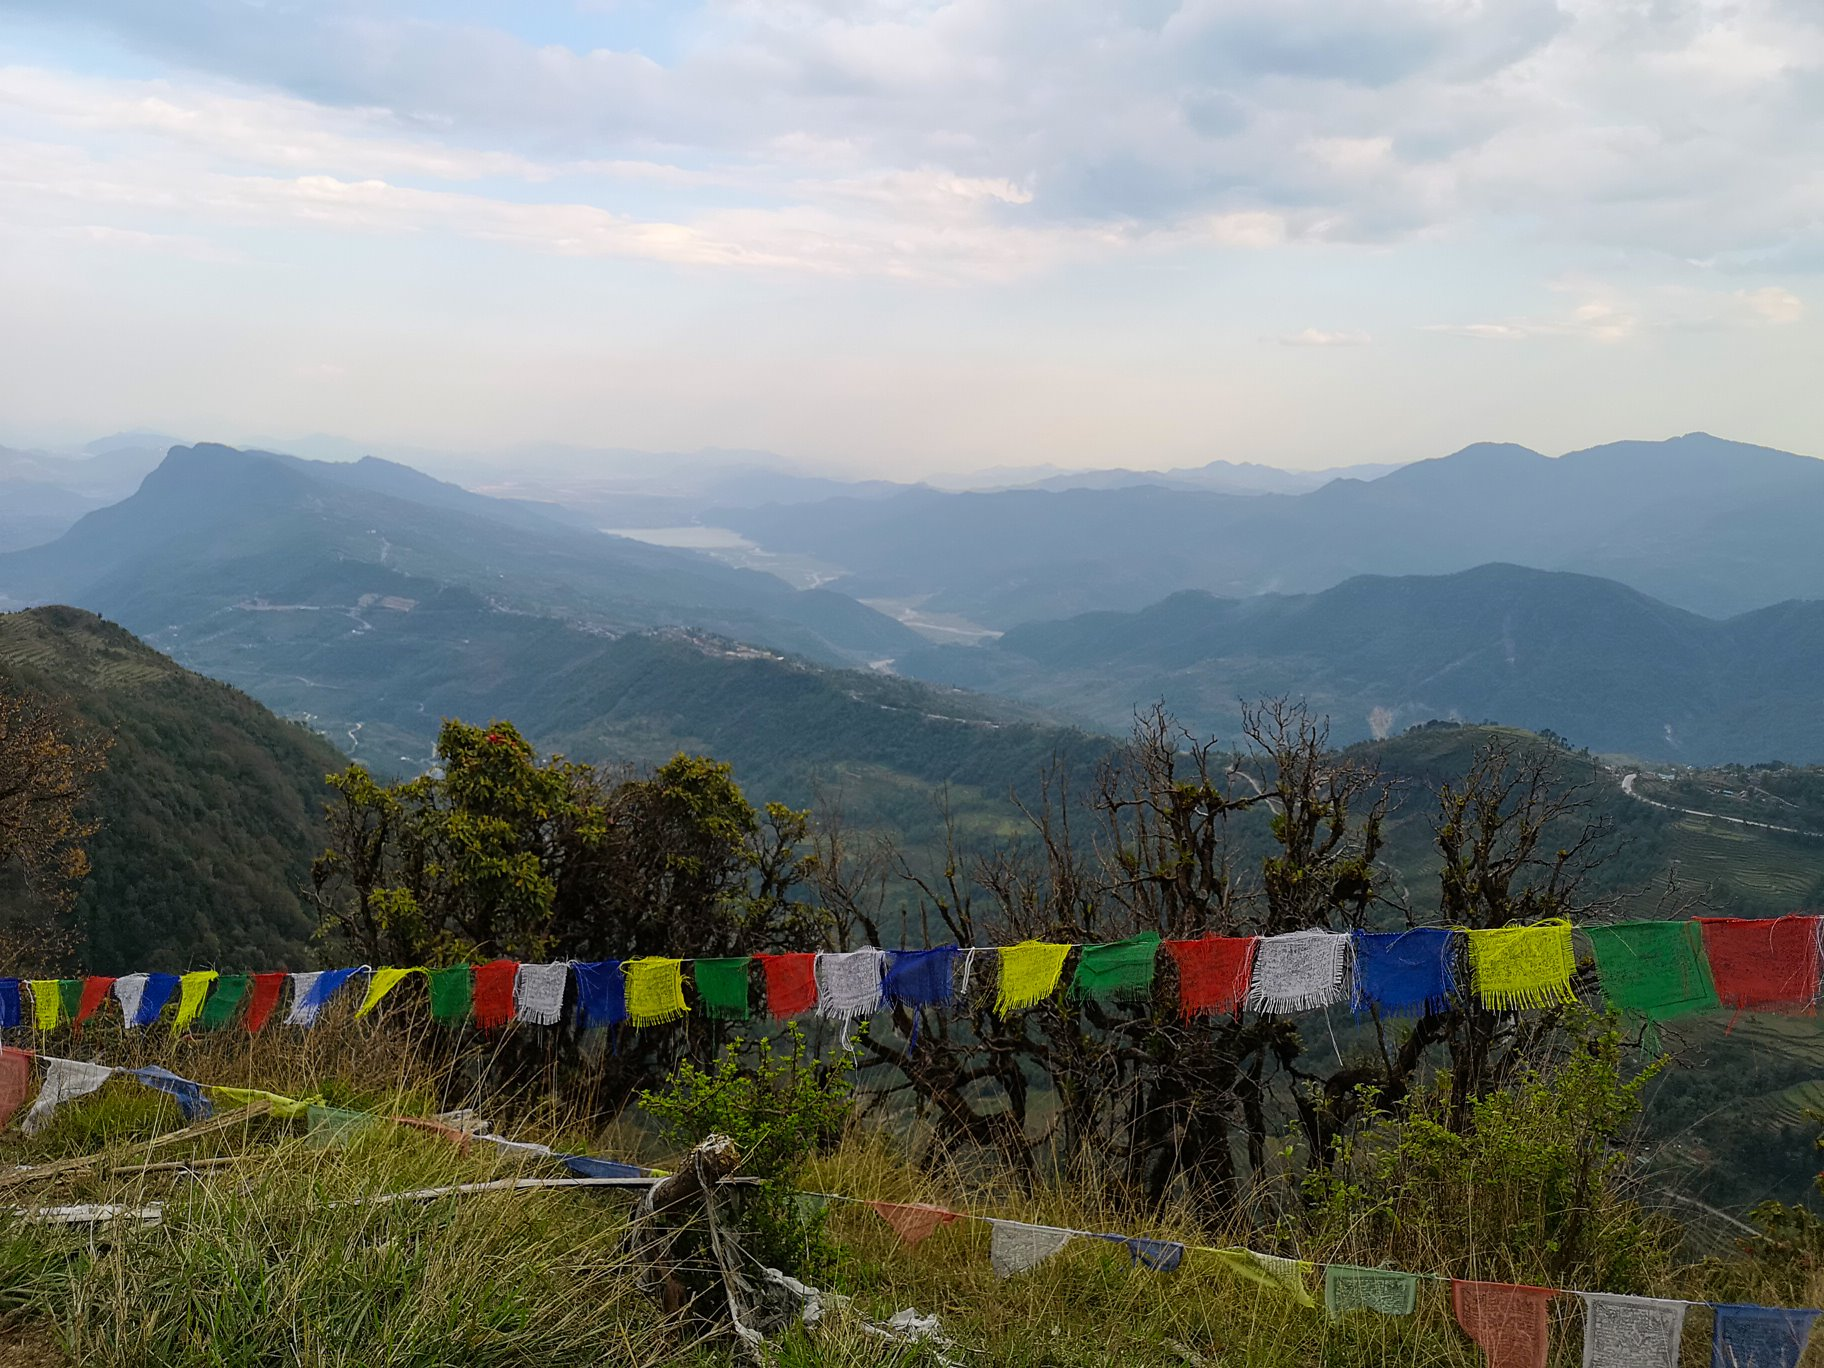 View from Australian camp in Nepal